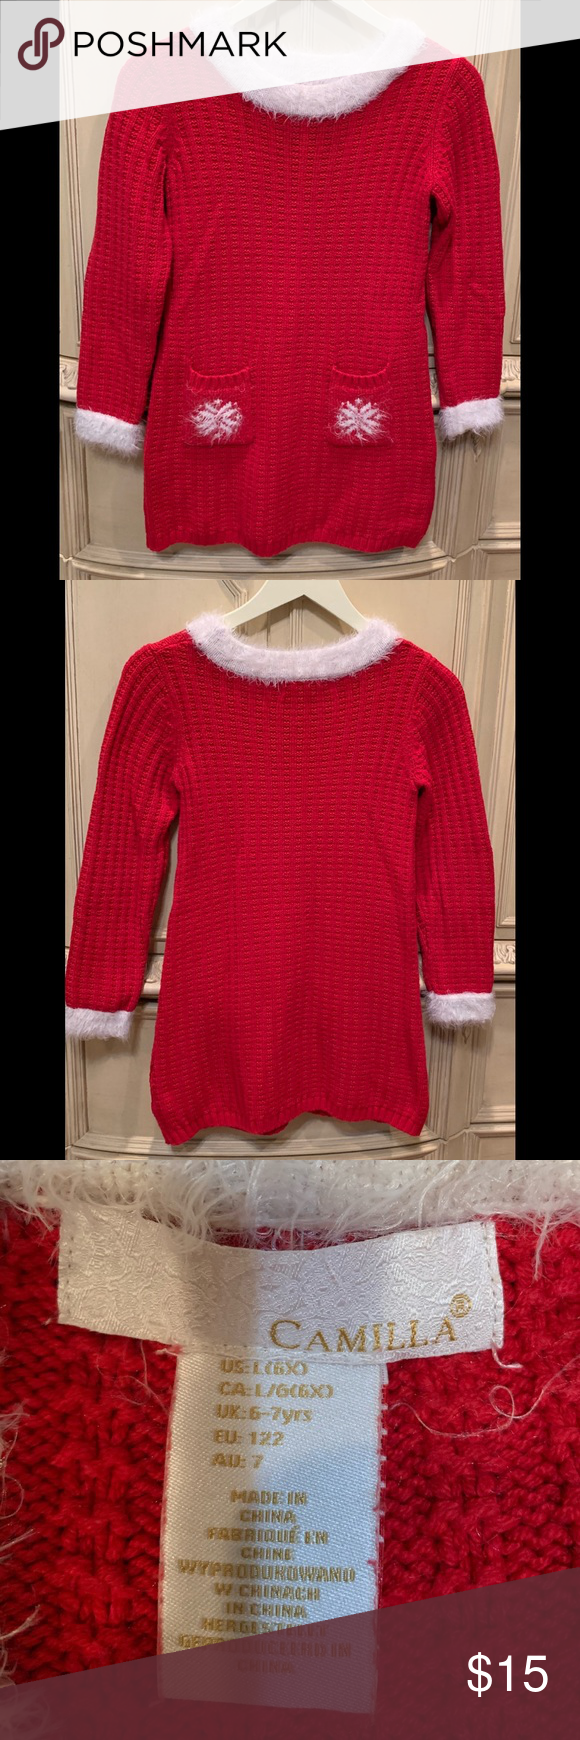 Girls Camilla Sweater Dress Red With White Trim 6x Red Sweater Dress With White Trim 2 Front Pockets Snowflake Red Sweater Dress Camilla Dress Clothes Design [ 1740 x 580 Pixel ]